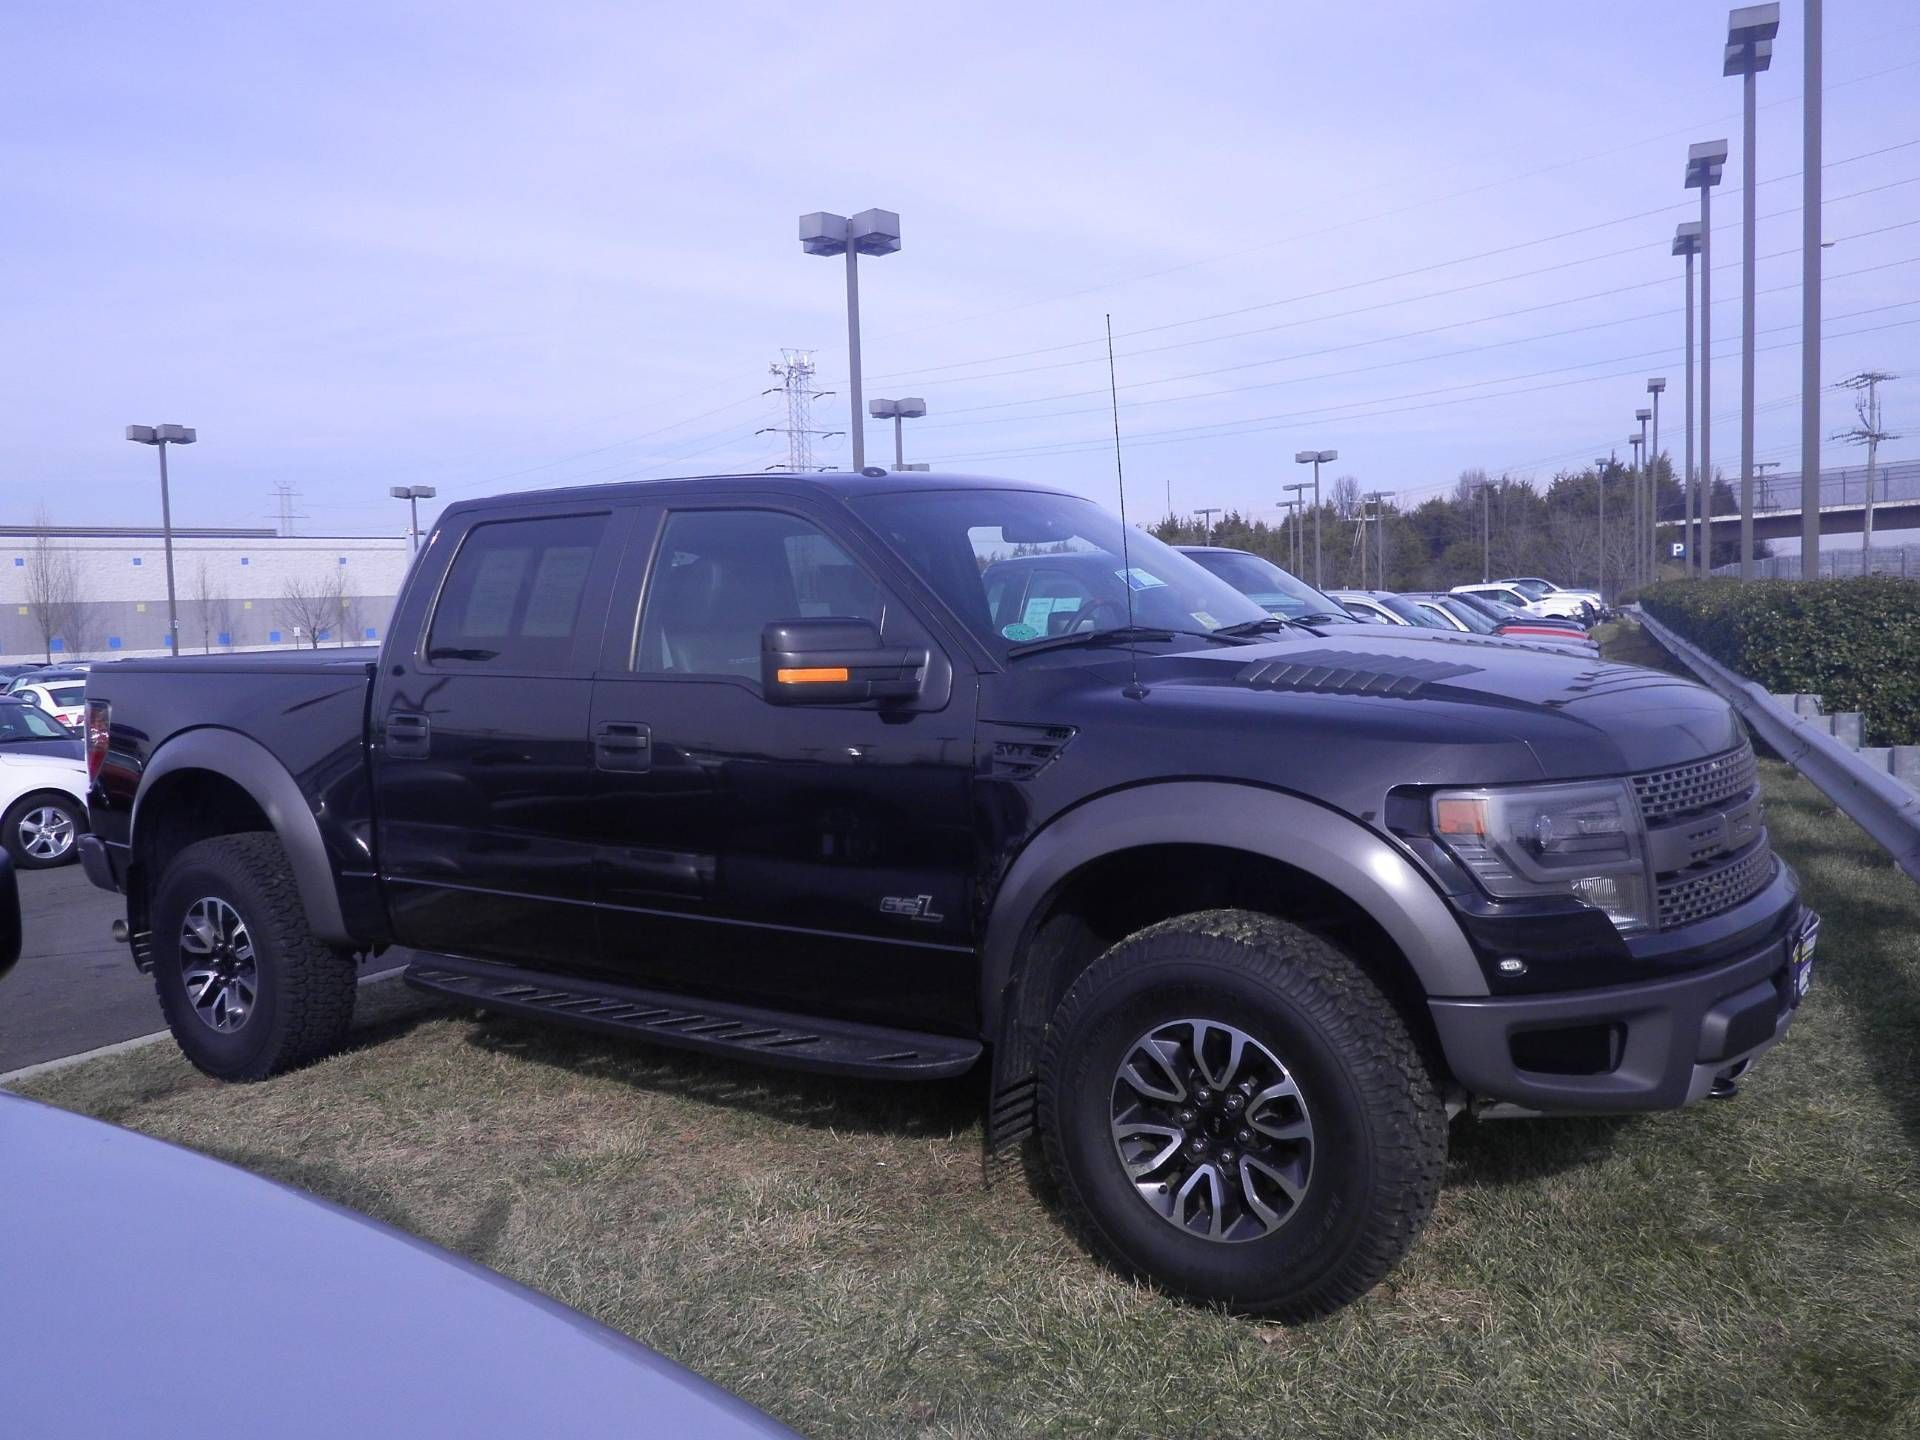 2013 Ford F150 SVT Raptor in East Haven CT at carmax